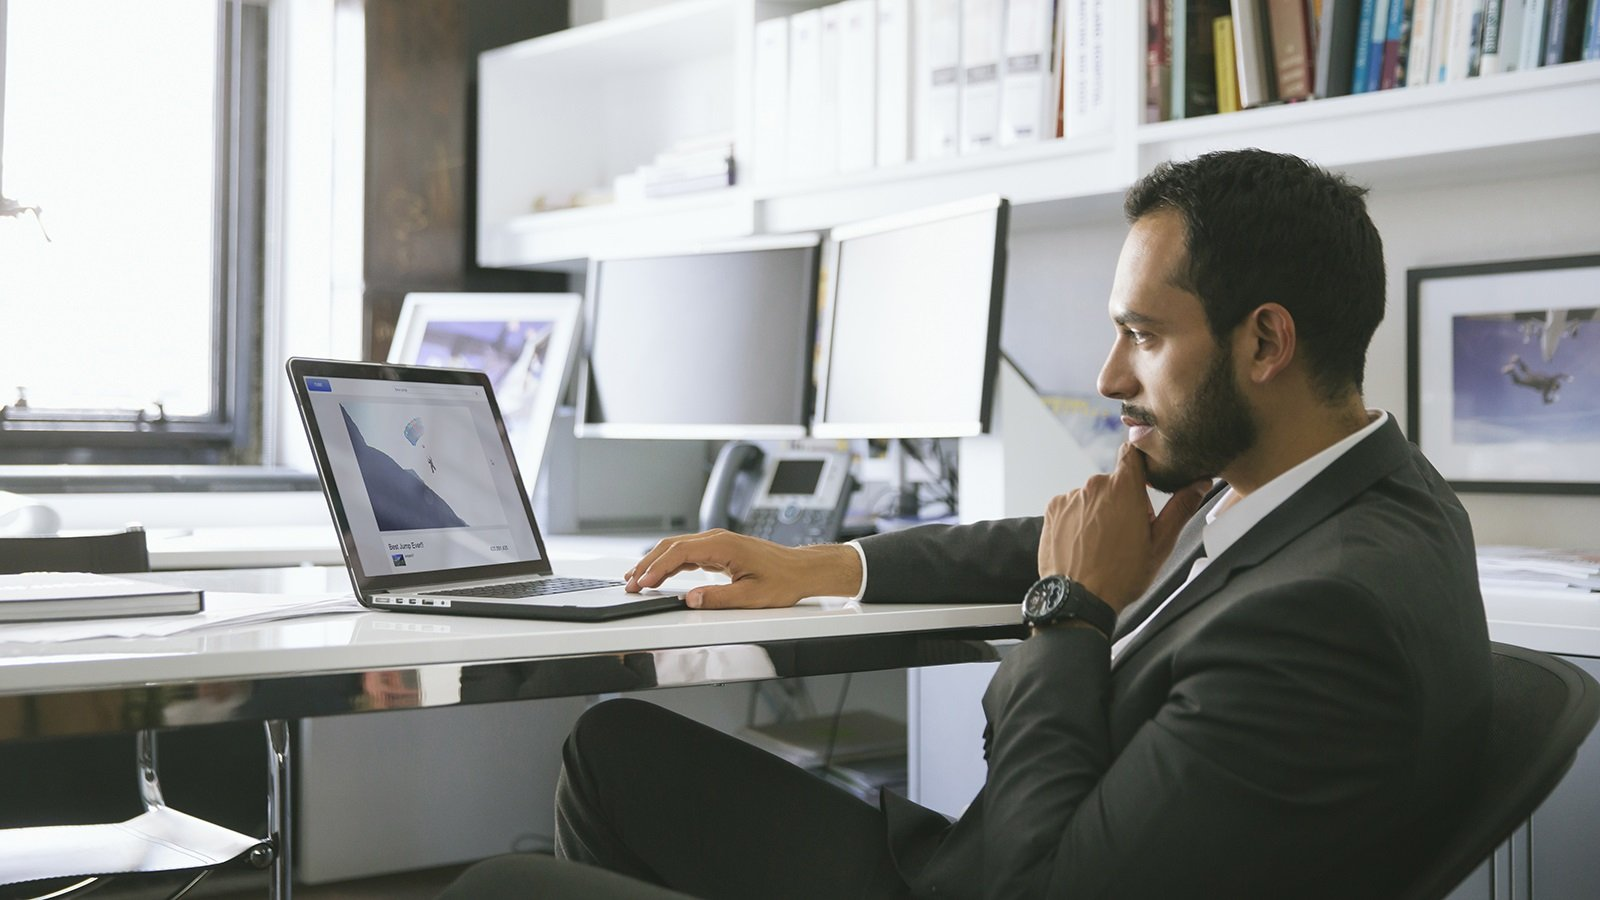 Man at desk using laptop.